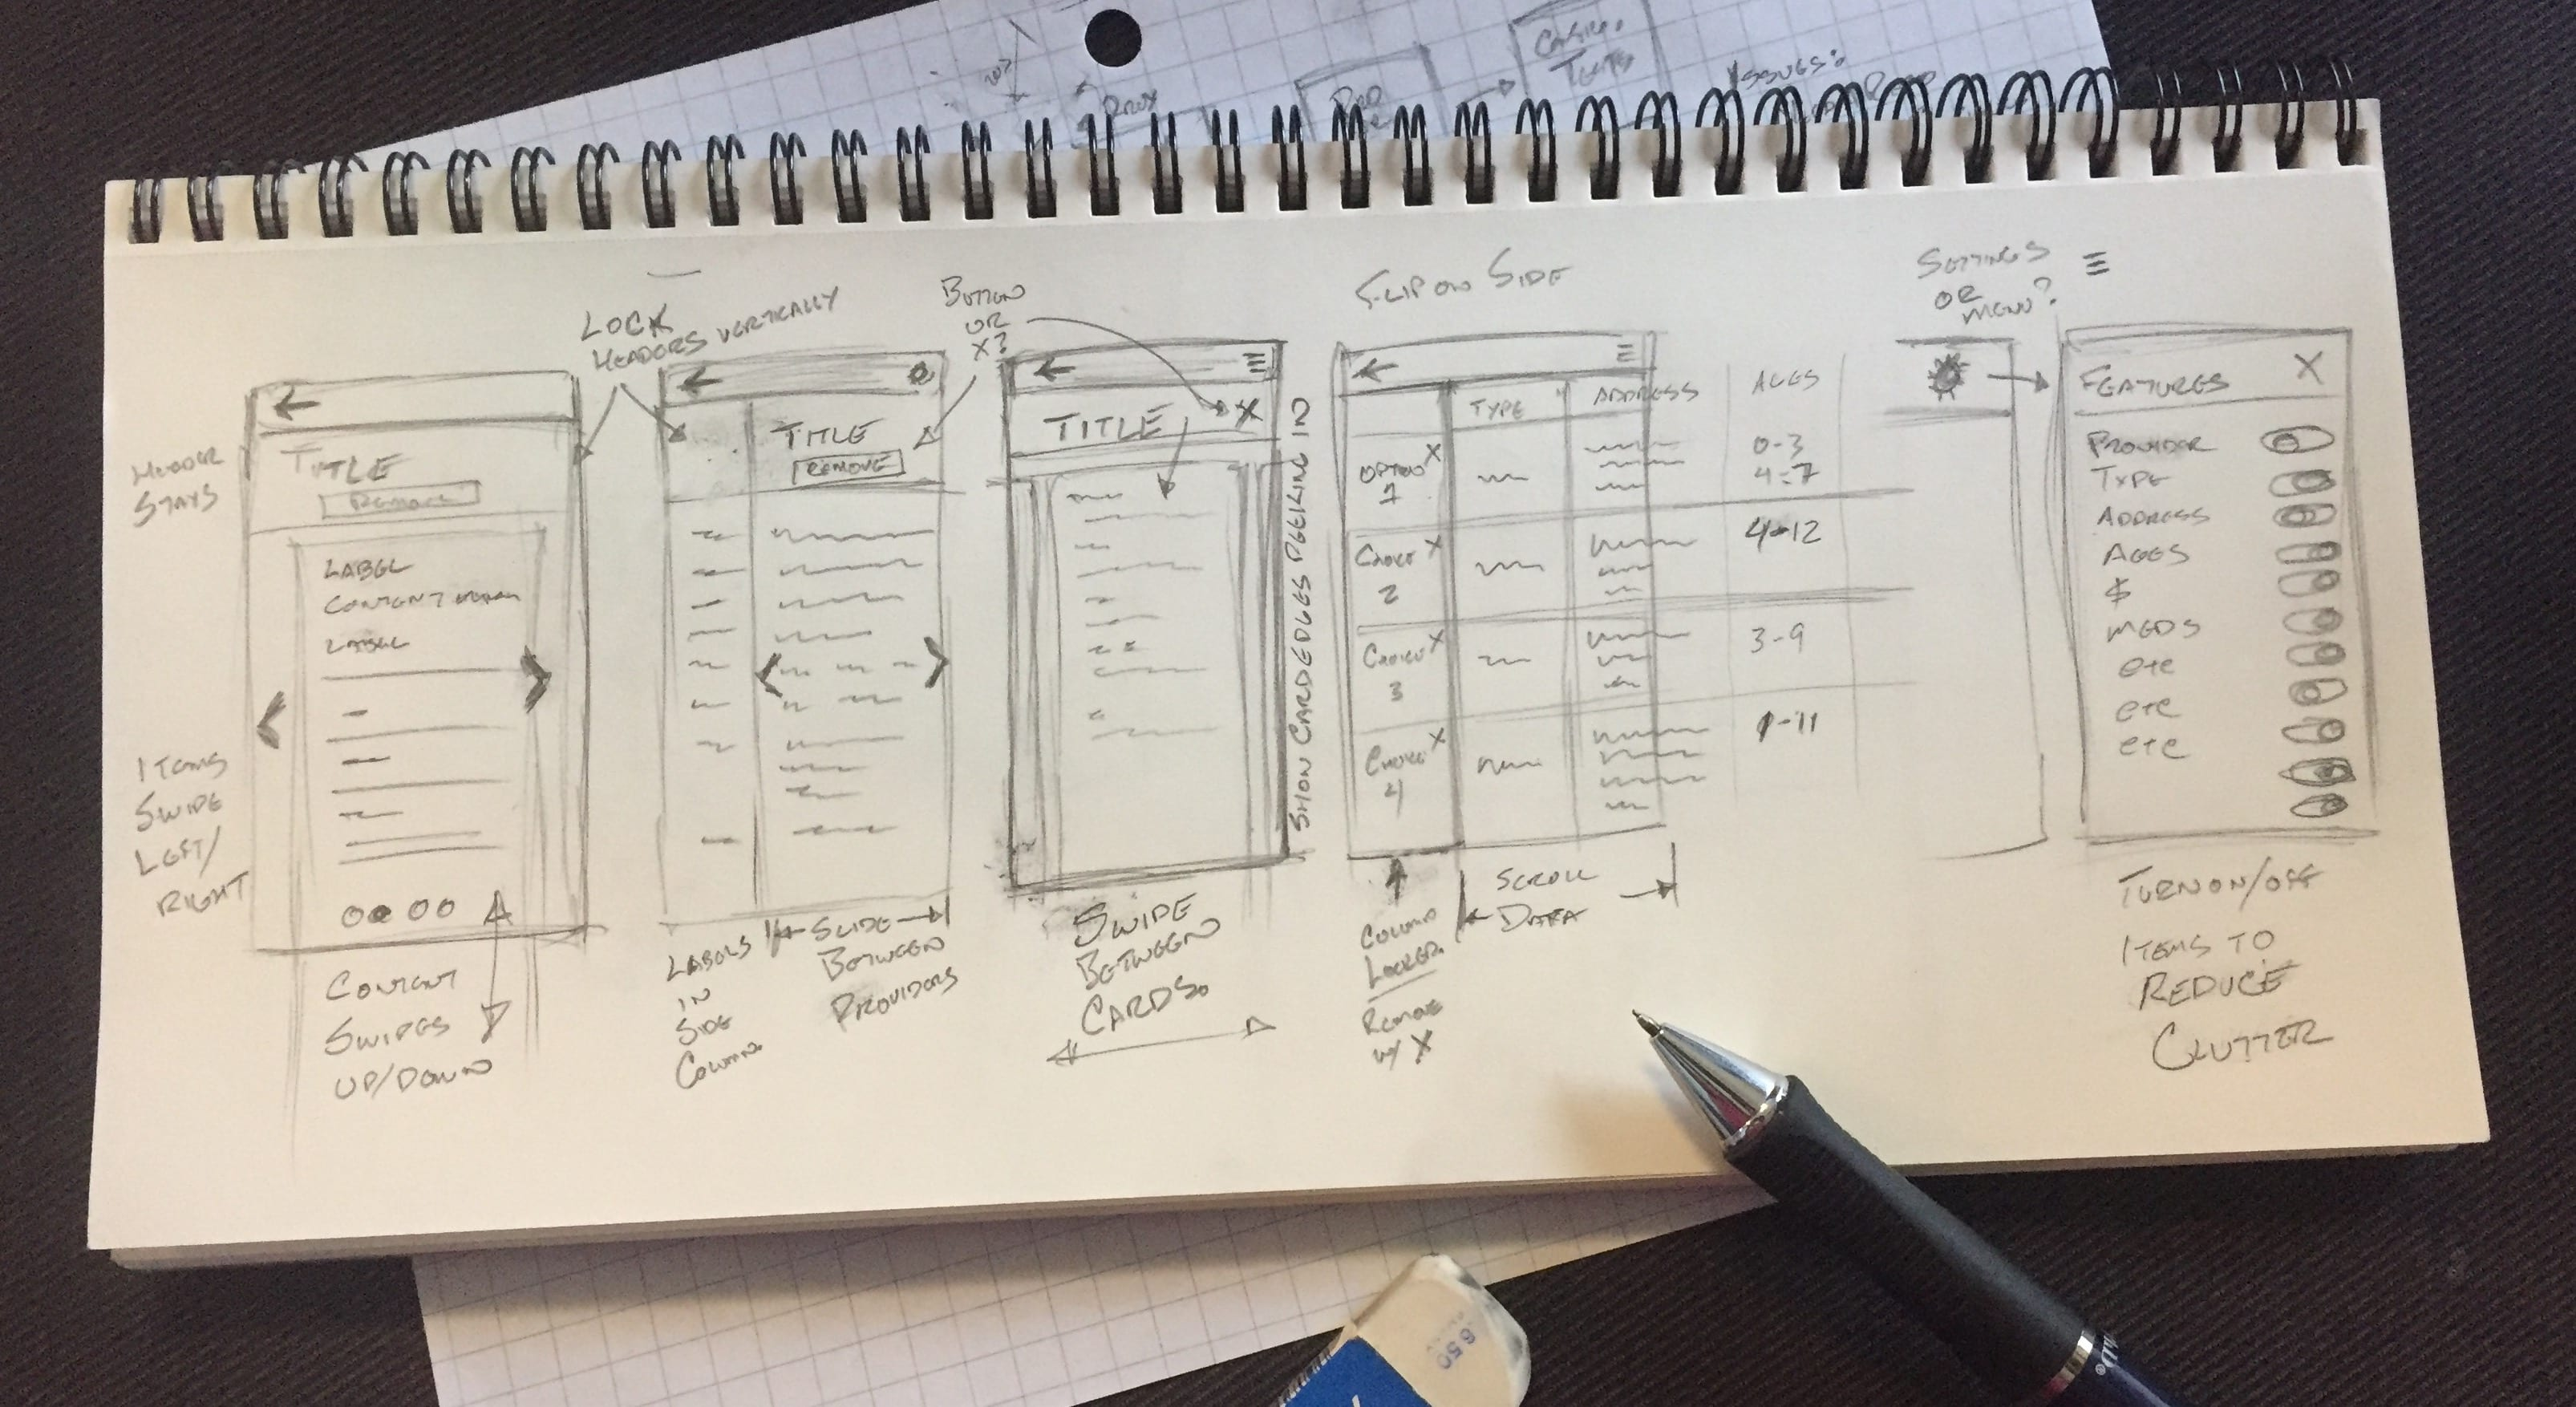 Photo of sketches for mobile comparison table ideas.